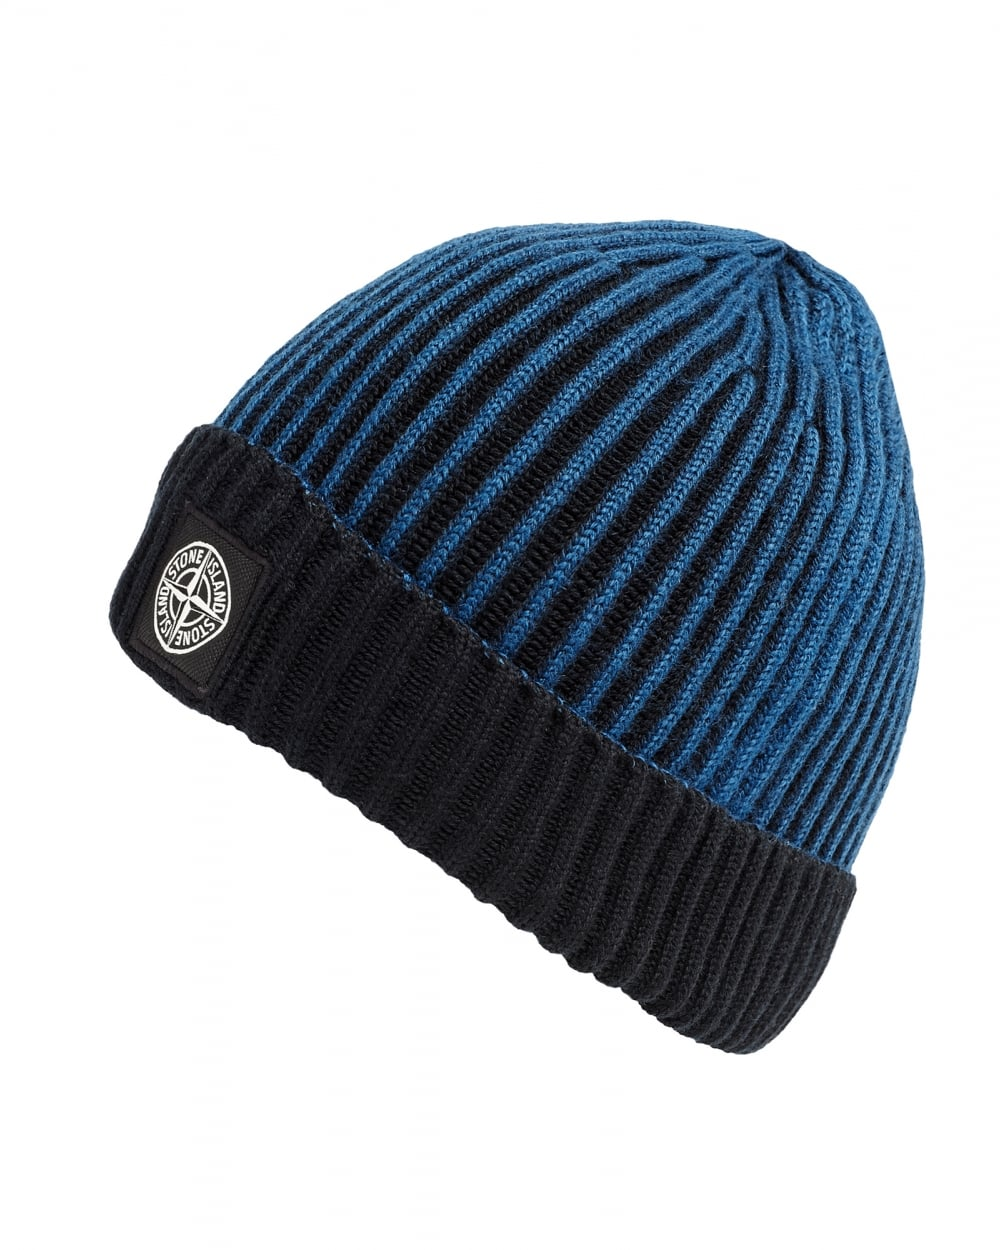 Shop at Etsy to find unique and handmade wool hats for men related items directly from our sellers. Close Beginning of a dialog window, including tabbed navigation to .